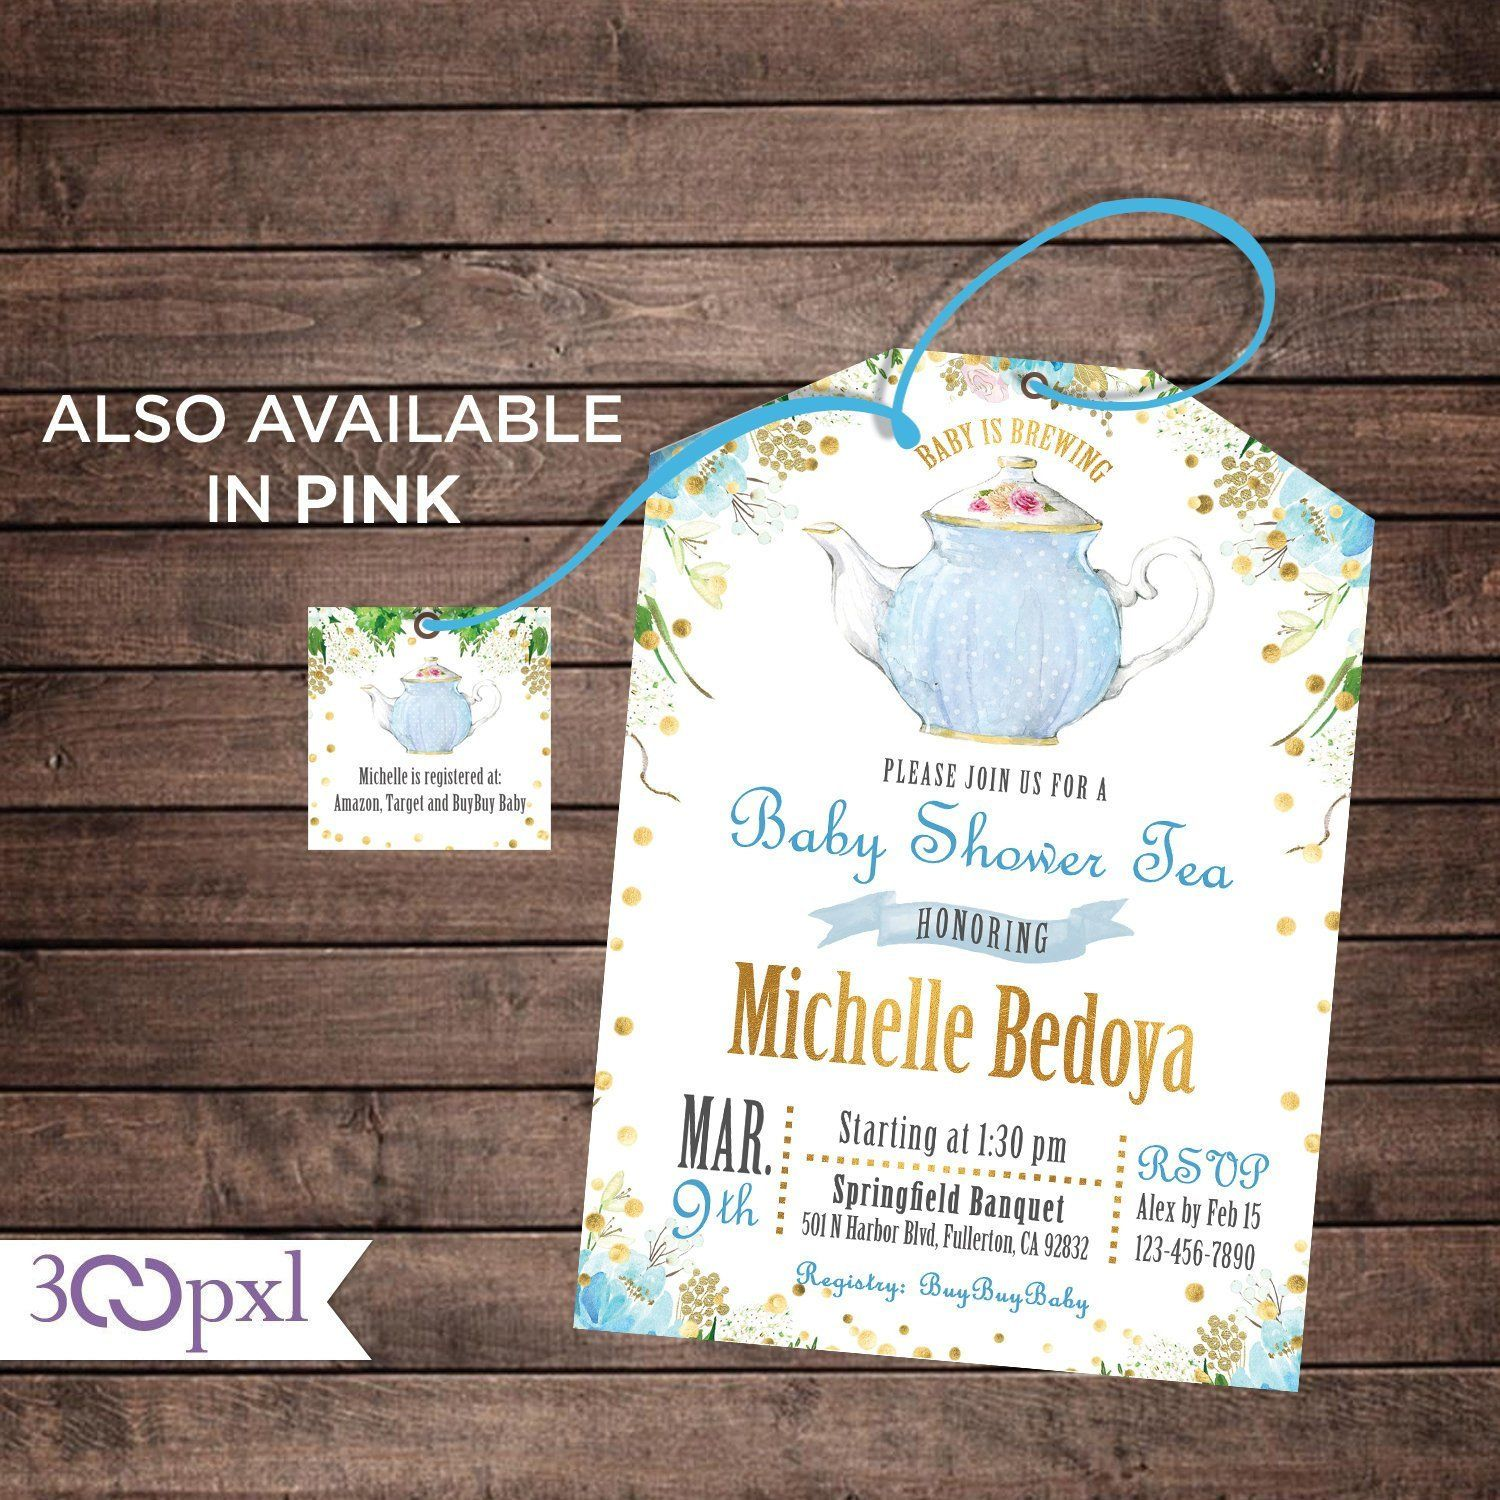 Tea Party Baby Shower Invitation A Baby Is Brewing Tea Bag Etsy Tea Party Baby Shower Invitations Baby Shower Tea Tea Party Garden